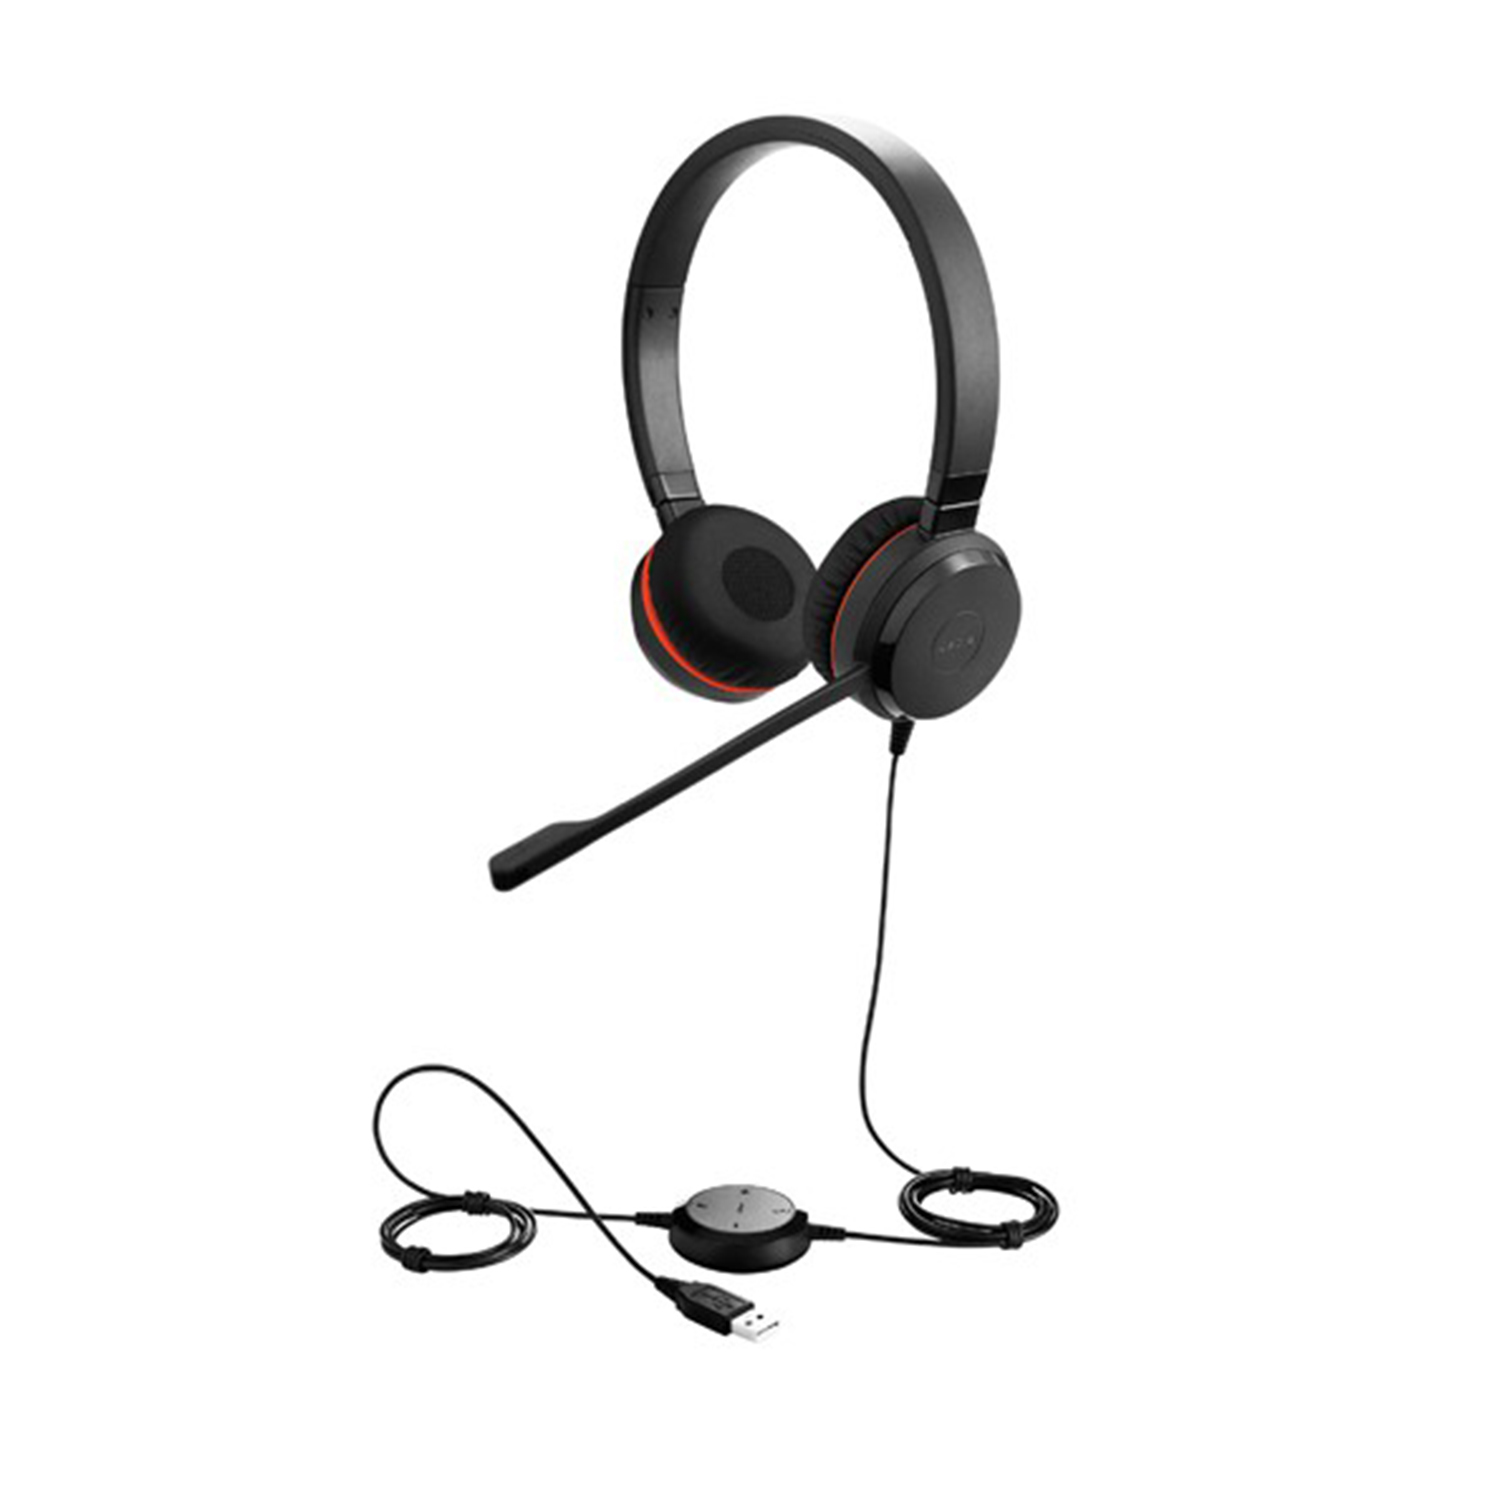 Jabra Evolve 75 Uc Duo Wireless Headset: Corded Headsets: Jabra Evolve 30 II Duo USB And 3.5mm UC